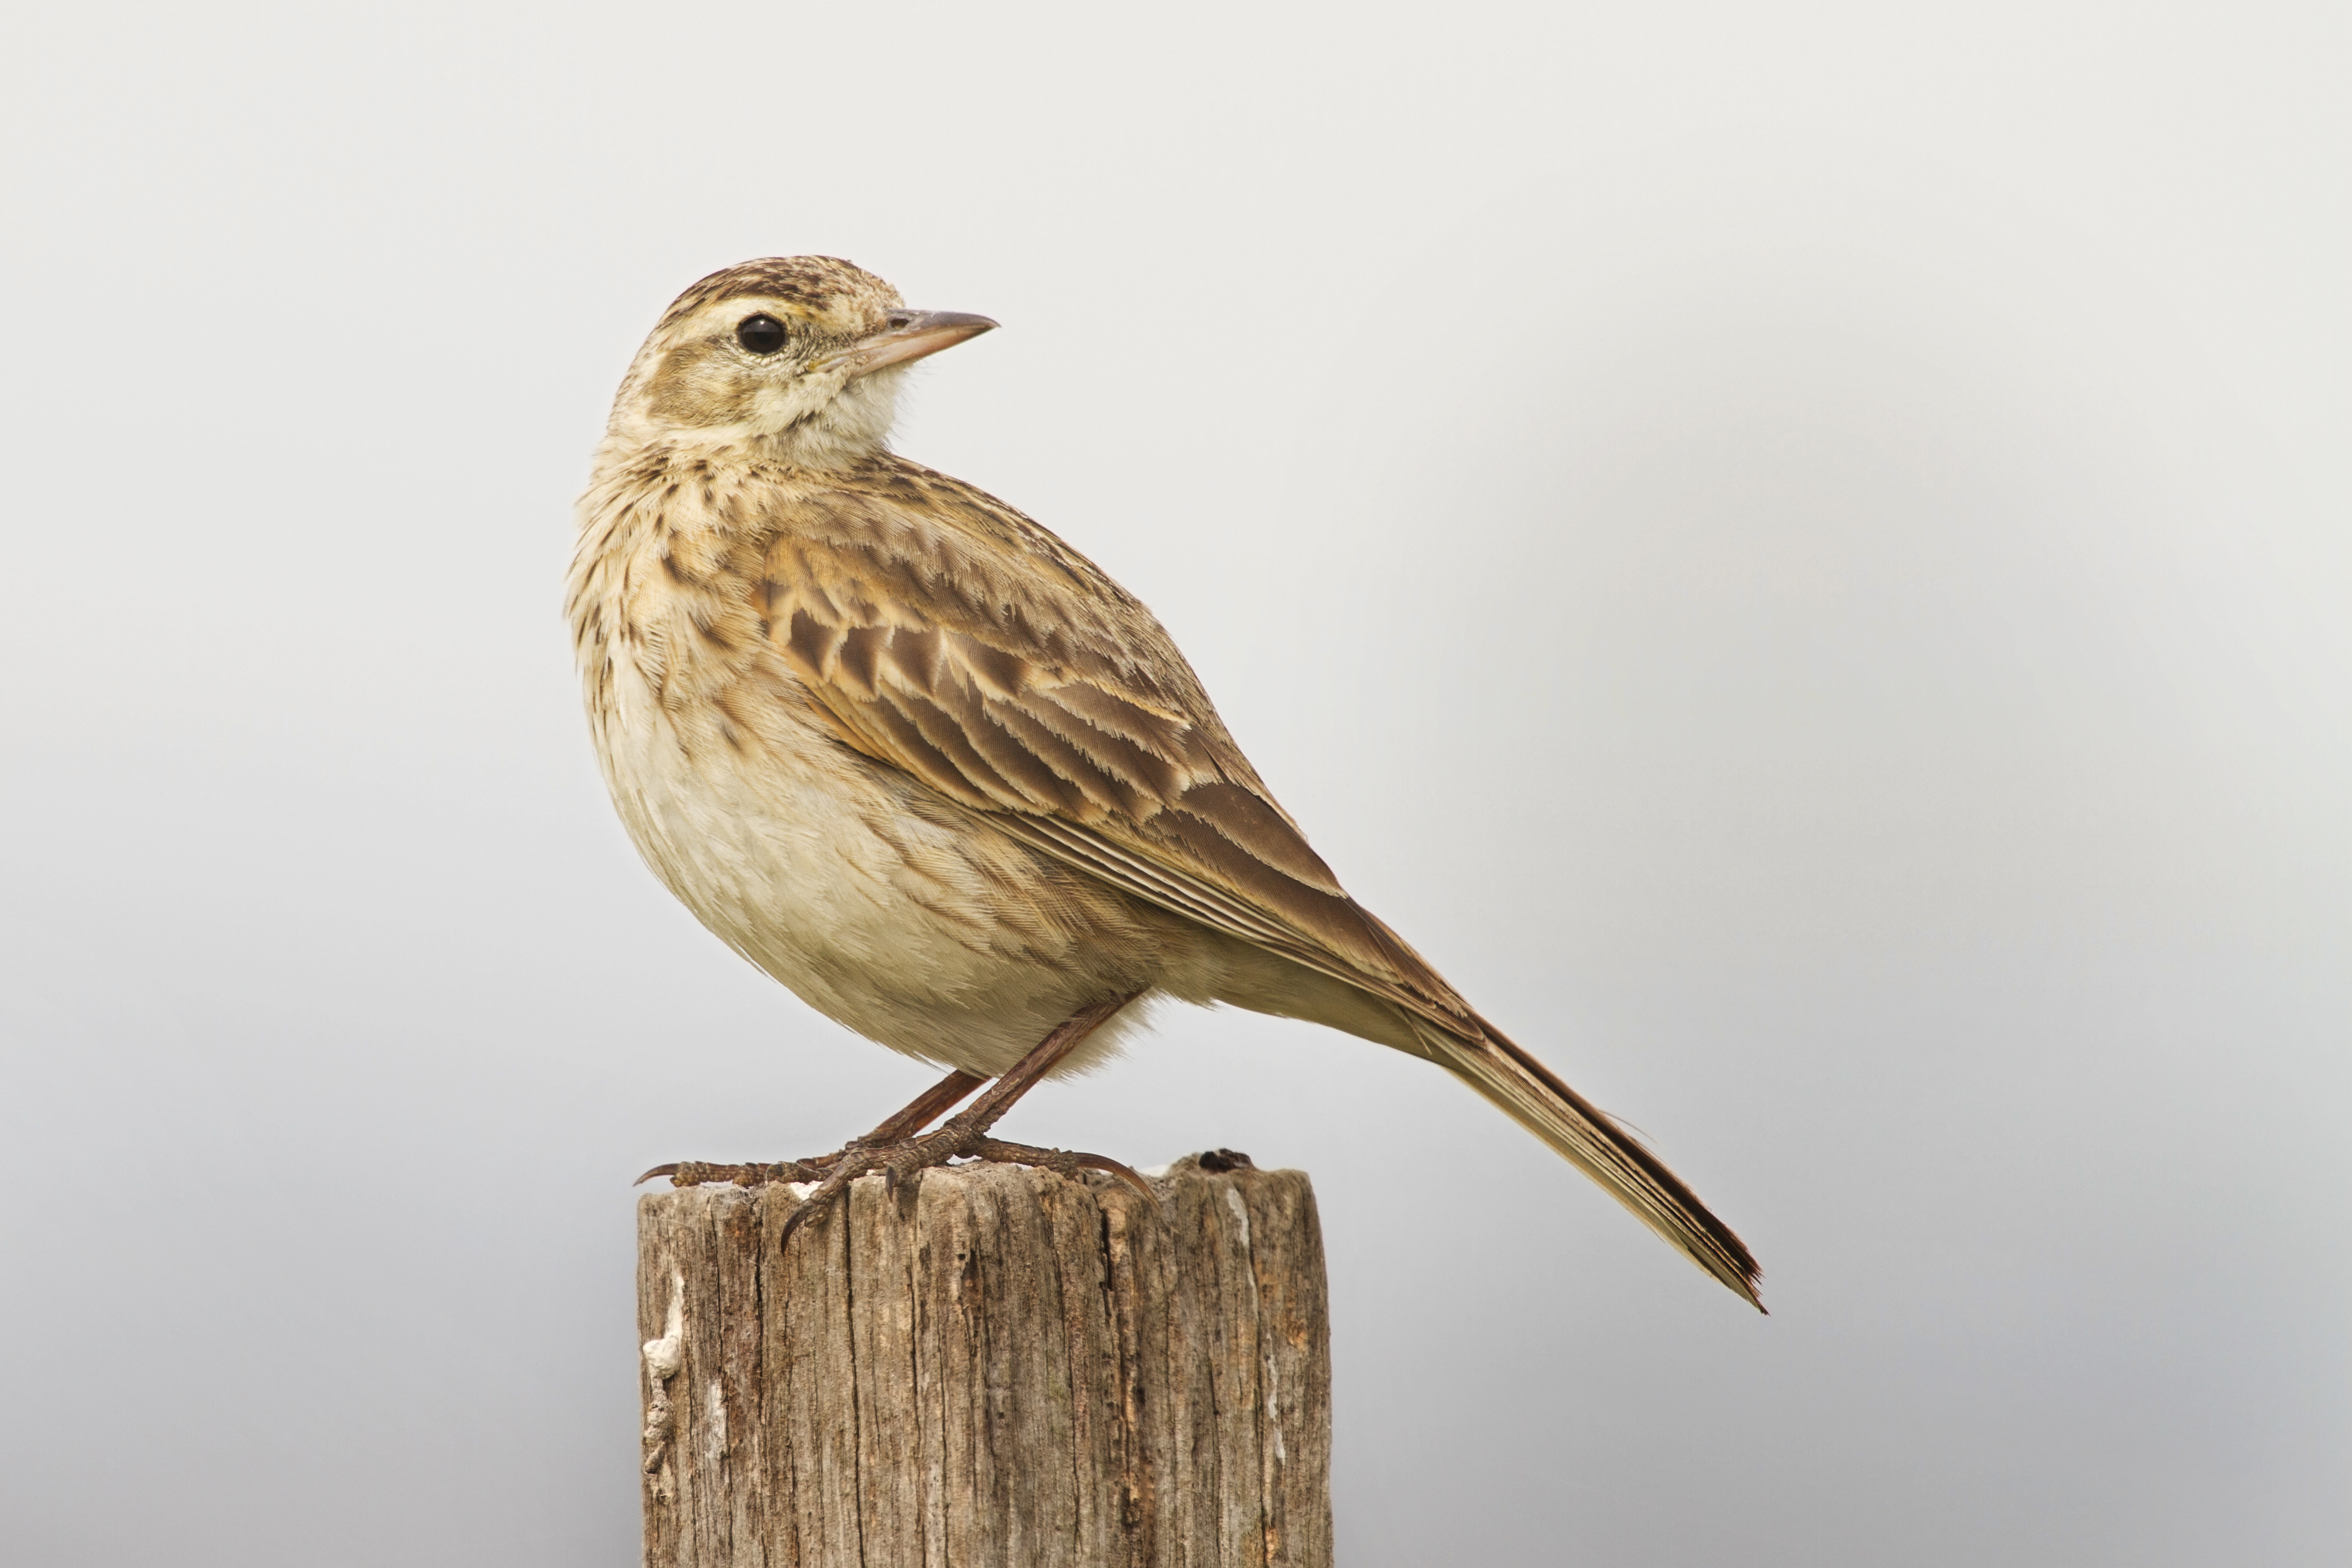 to a skylark analysis Notice shelley's usage of similes to compare the skylark to earthly occurrences that never seem to out-do the birds song his song is ethereal and the hidden poet, the high-born maiden, and the glow-worm are all beautiful like this birds song, but not better.